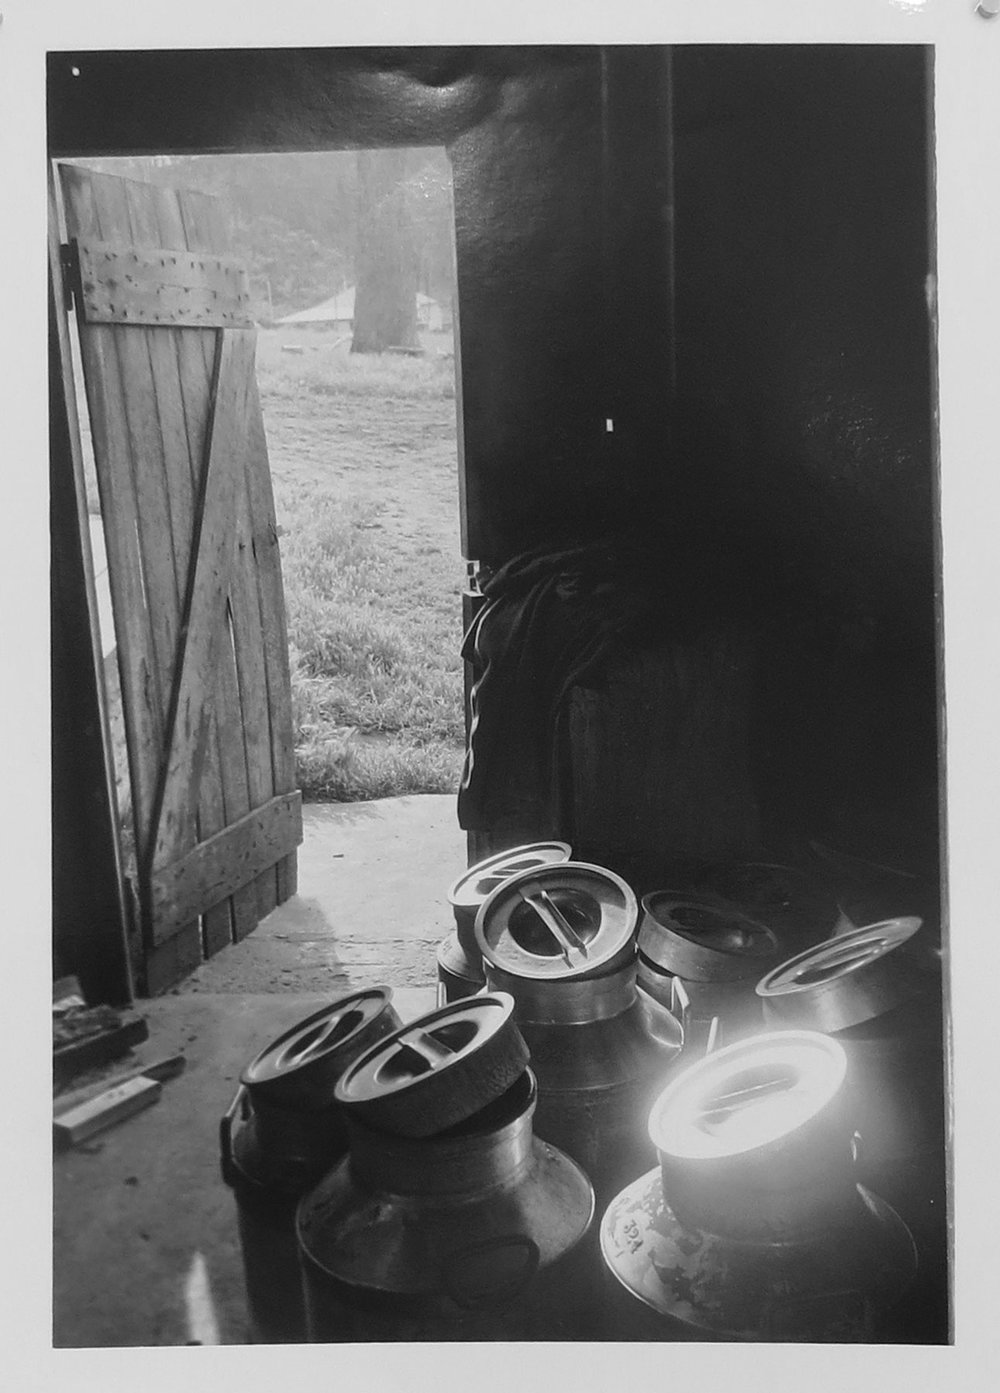 5. Richard Woldendorp, 'Milk Churns, Dairy Farm, Donnybrook WA', BW212, taken in 1963, printed in 2015